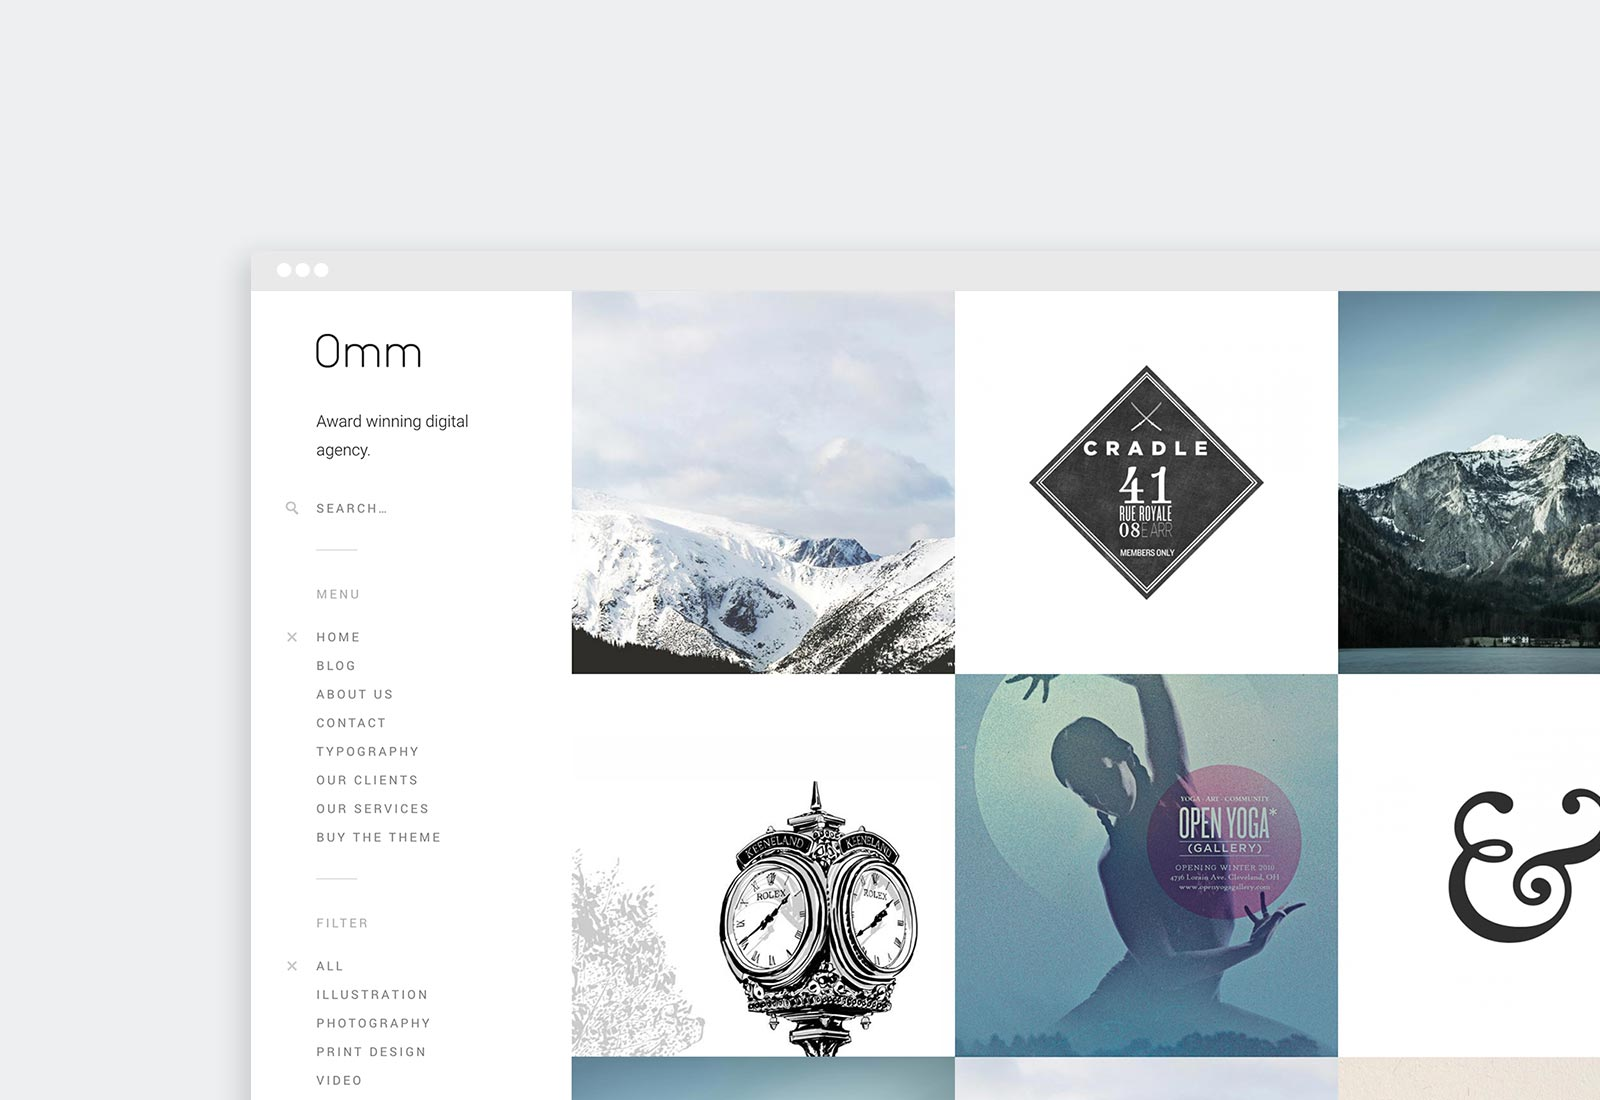 Omm WordPress Theme